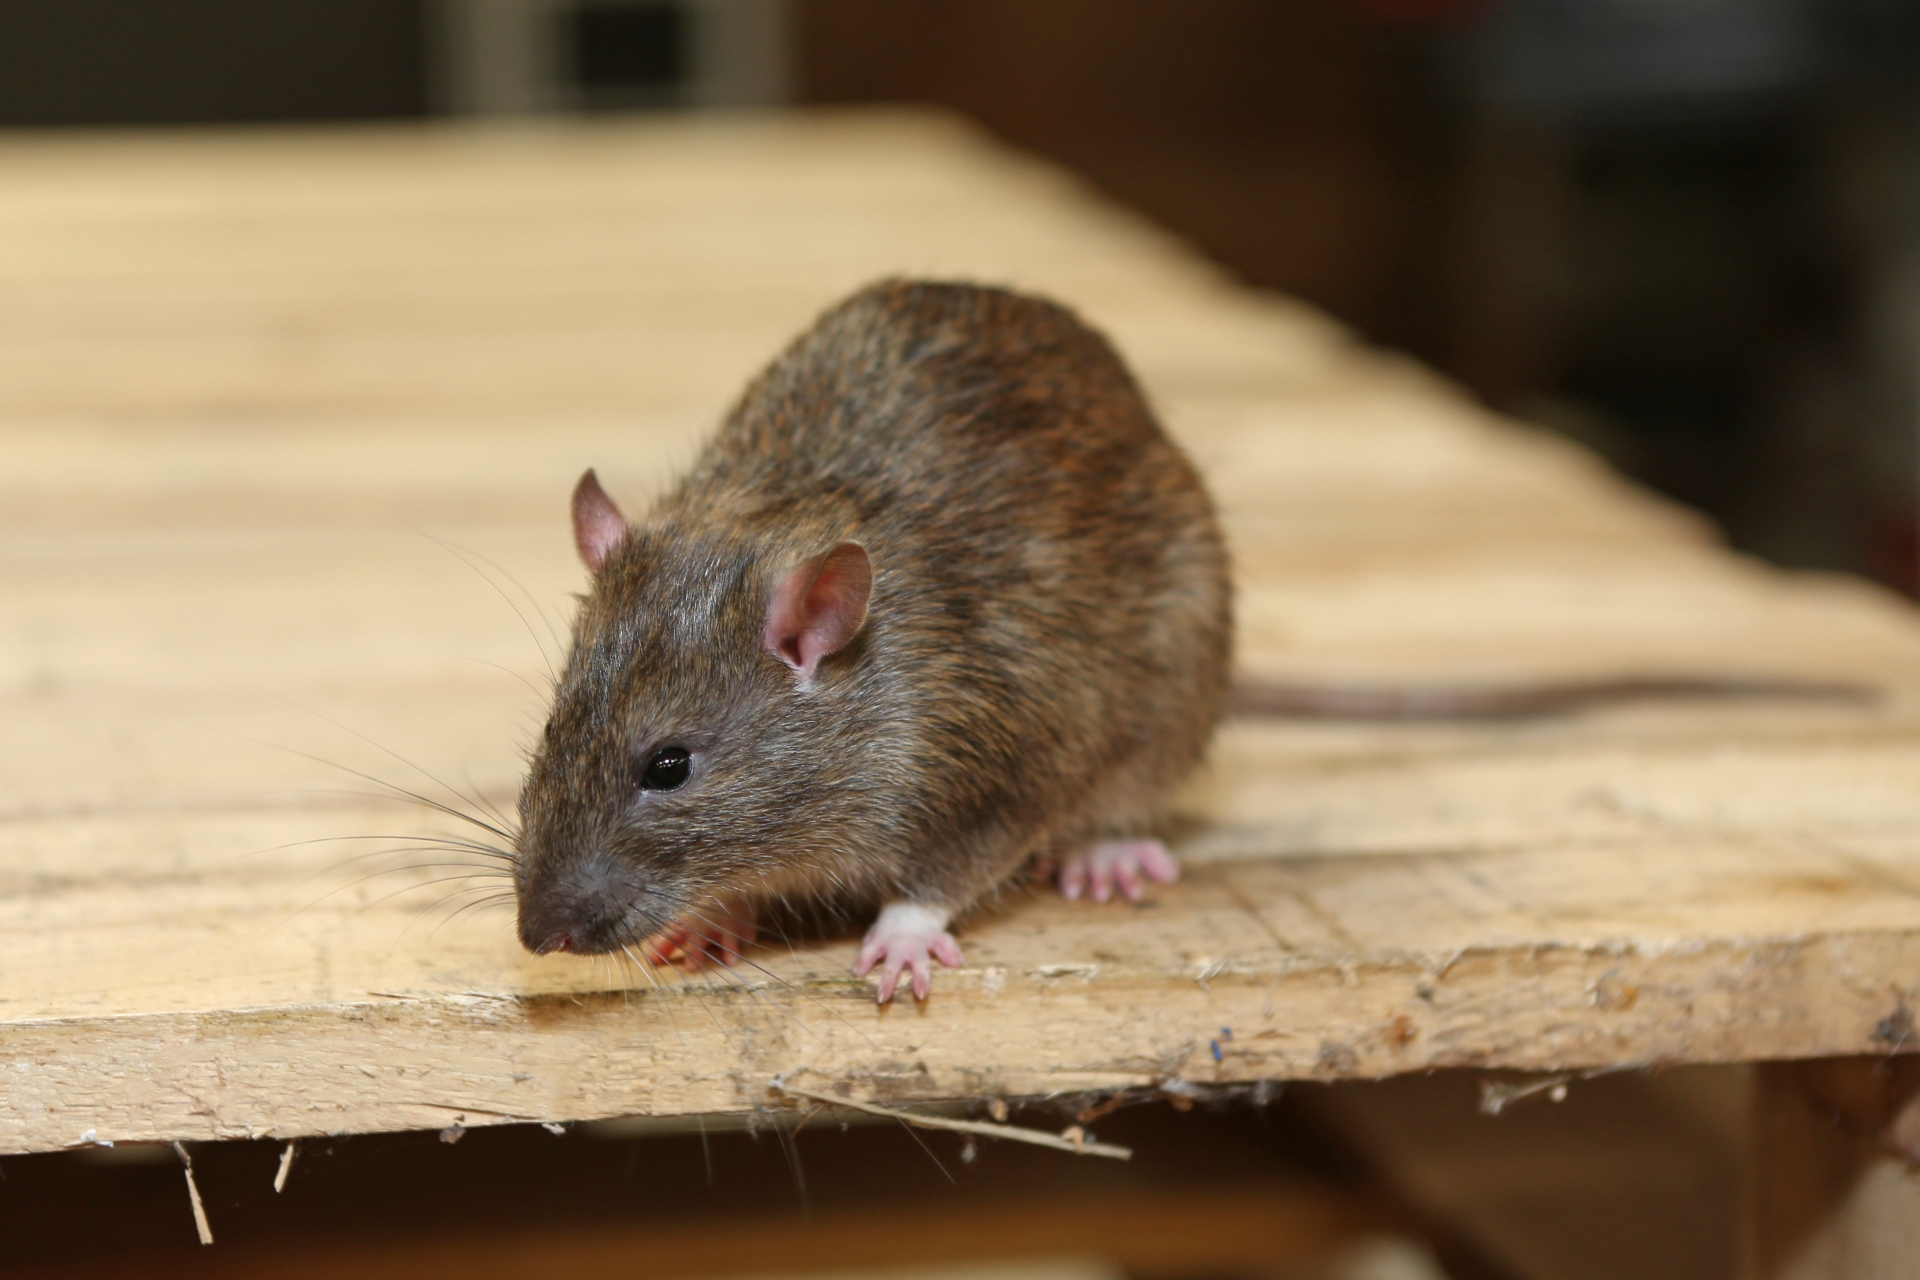 Rat Control, Pest Control in Roehampton, SW15. Call Now 020 8166 9746